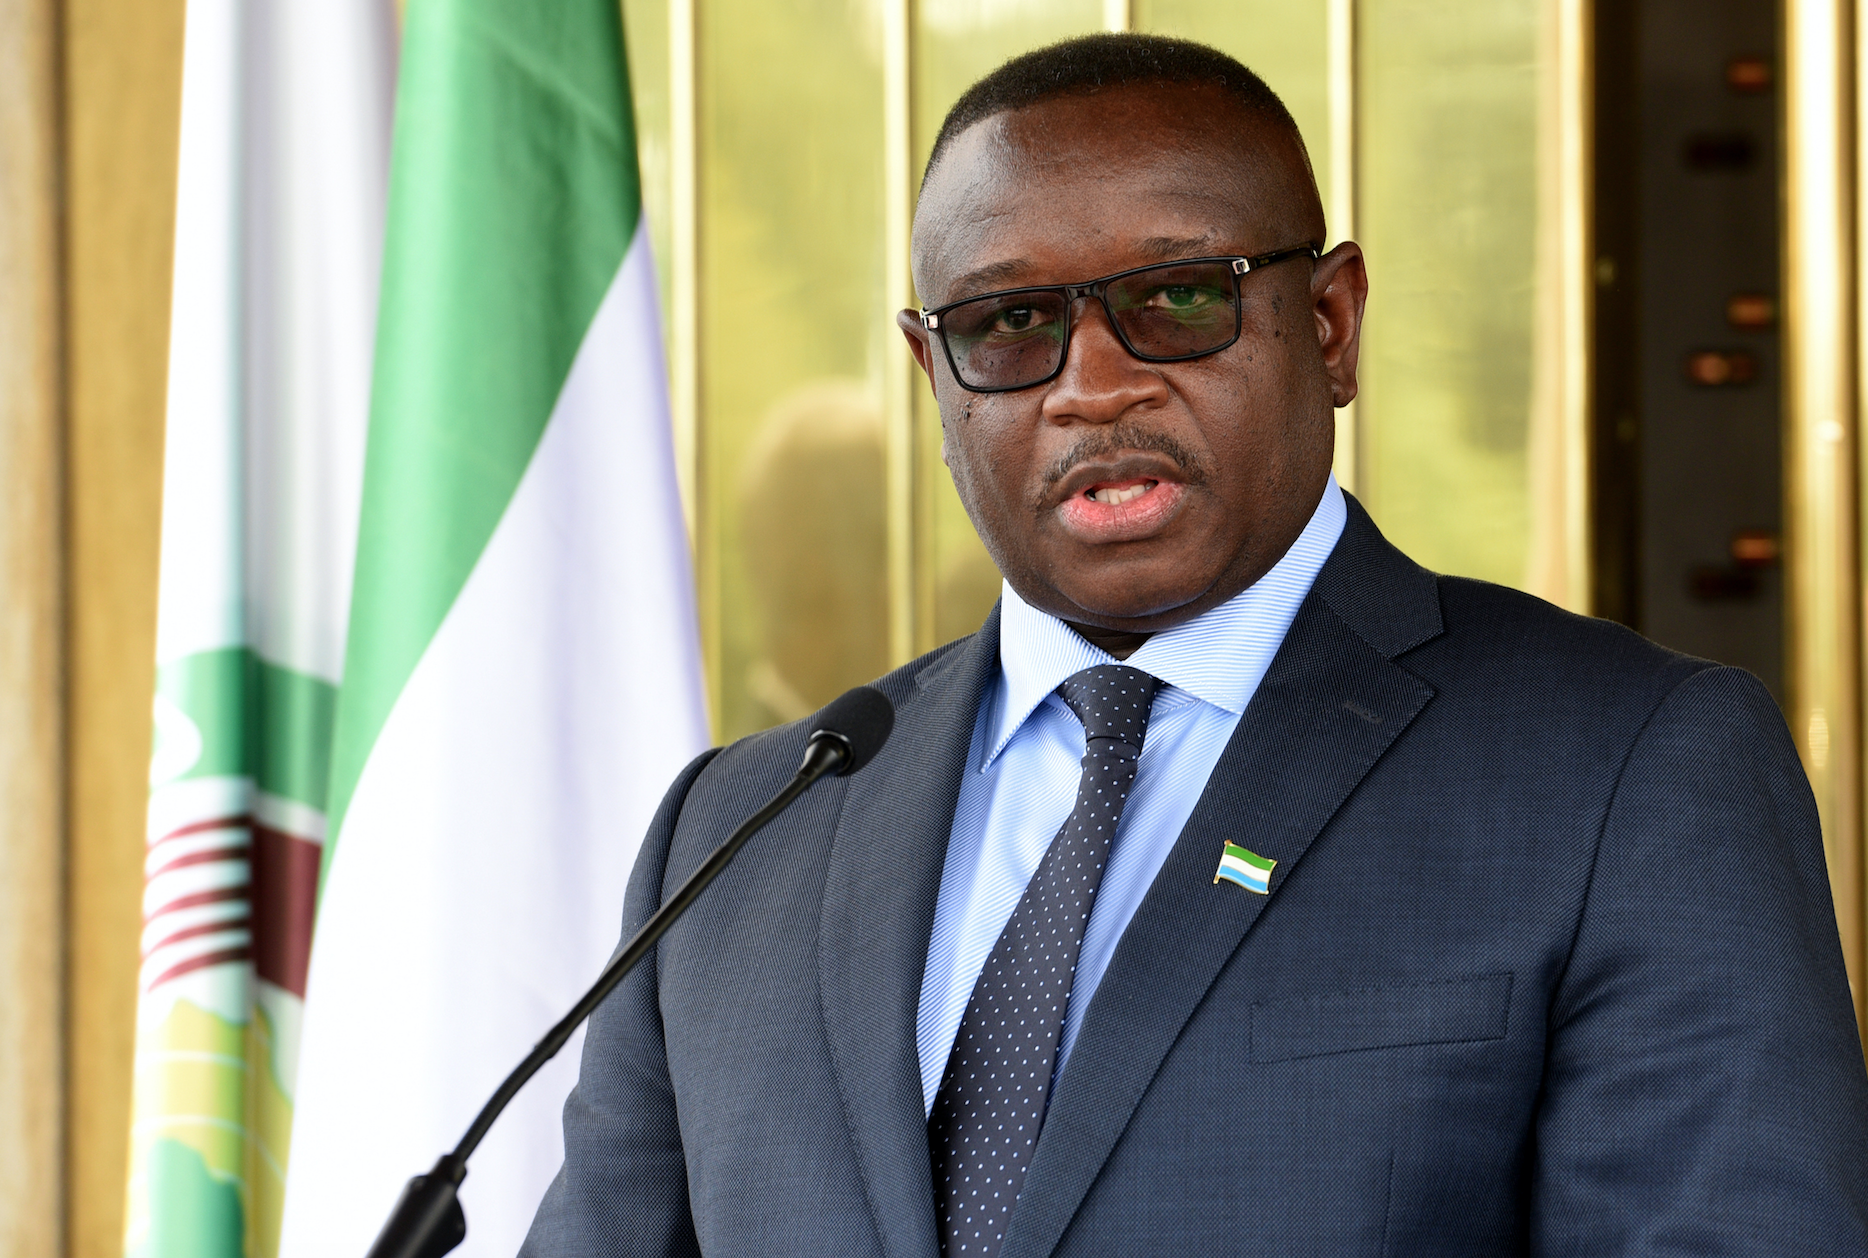 Sierra Leone: President Maada Bio to Chair the 6th International Africa Development Forum